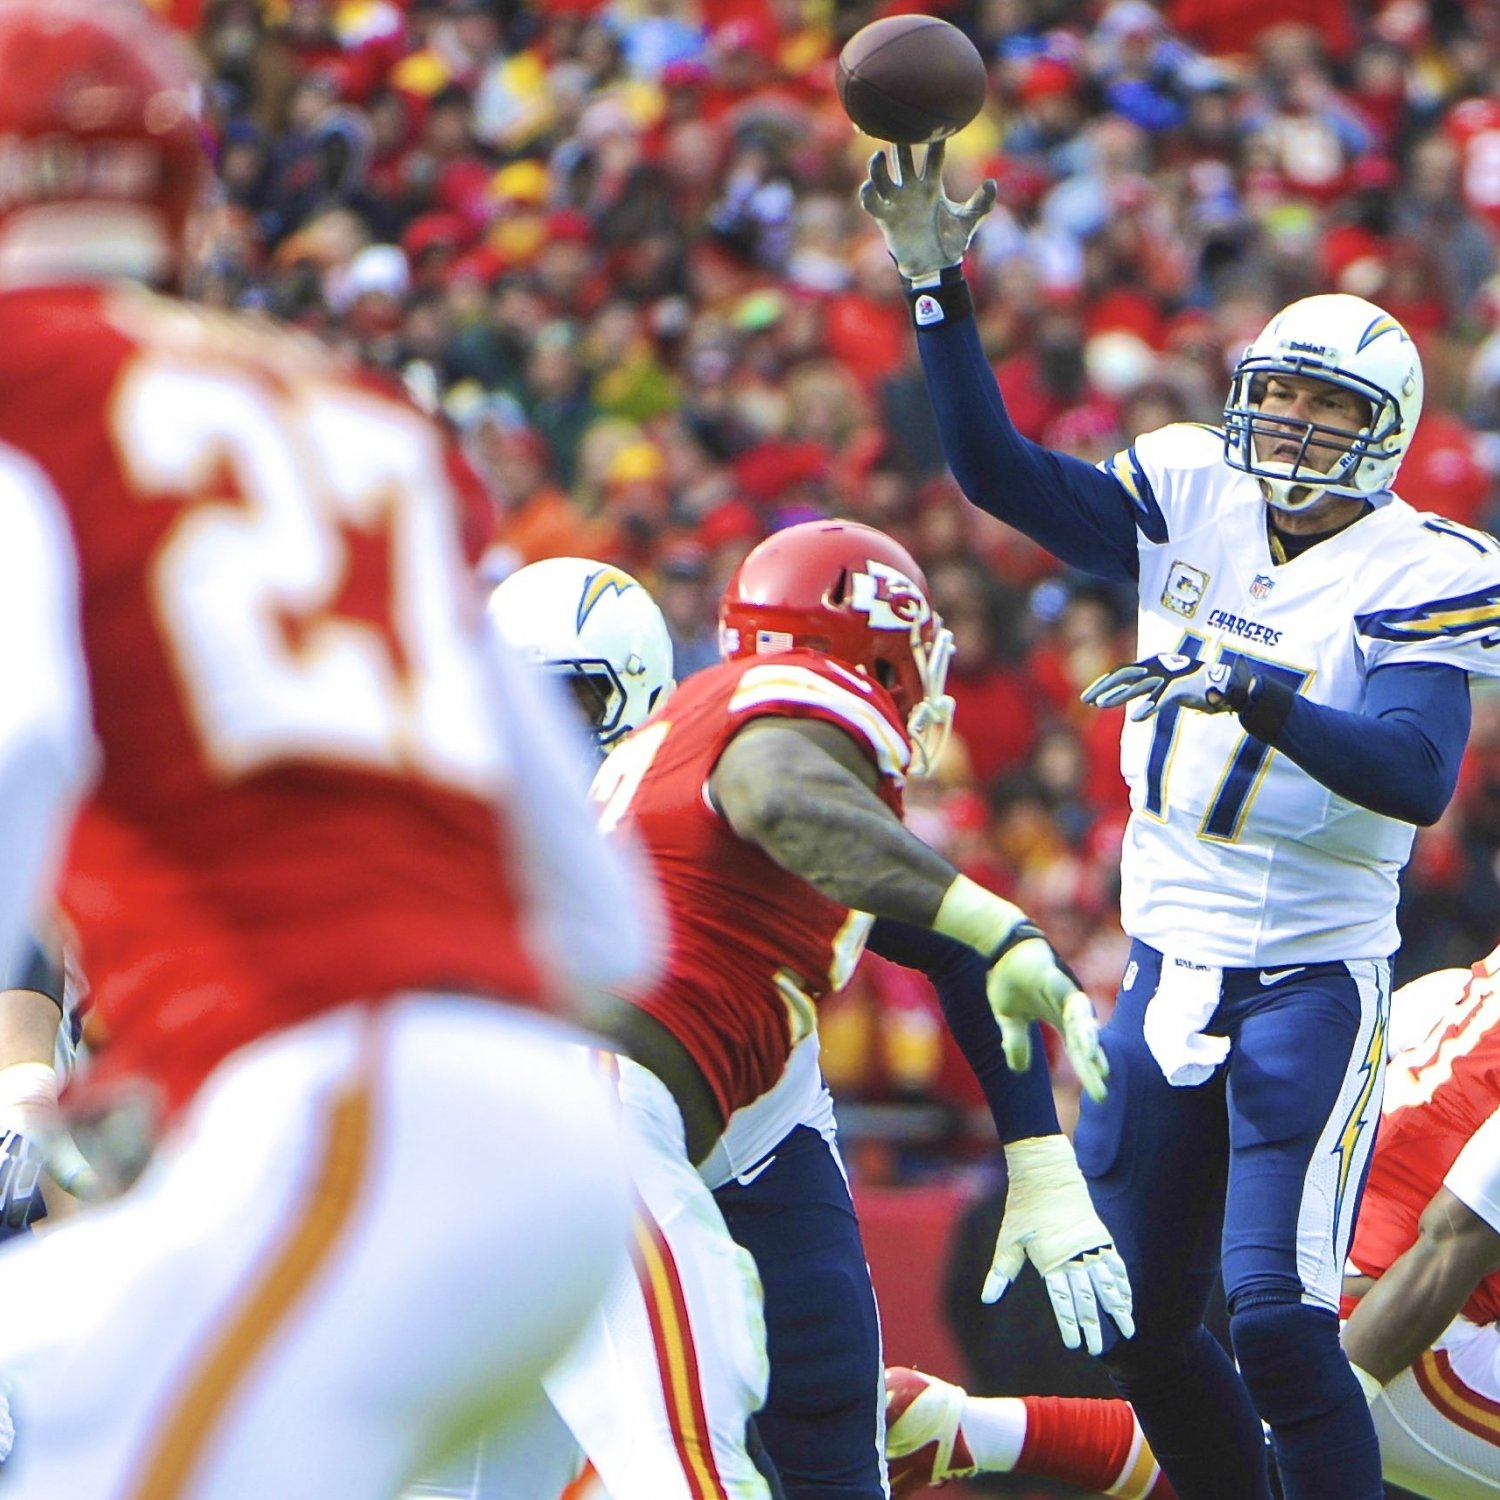 San Diego Chargers Chiefs Game: San Diego Chargers Vs. Kansas City Chiefs: Live Score